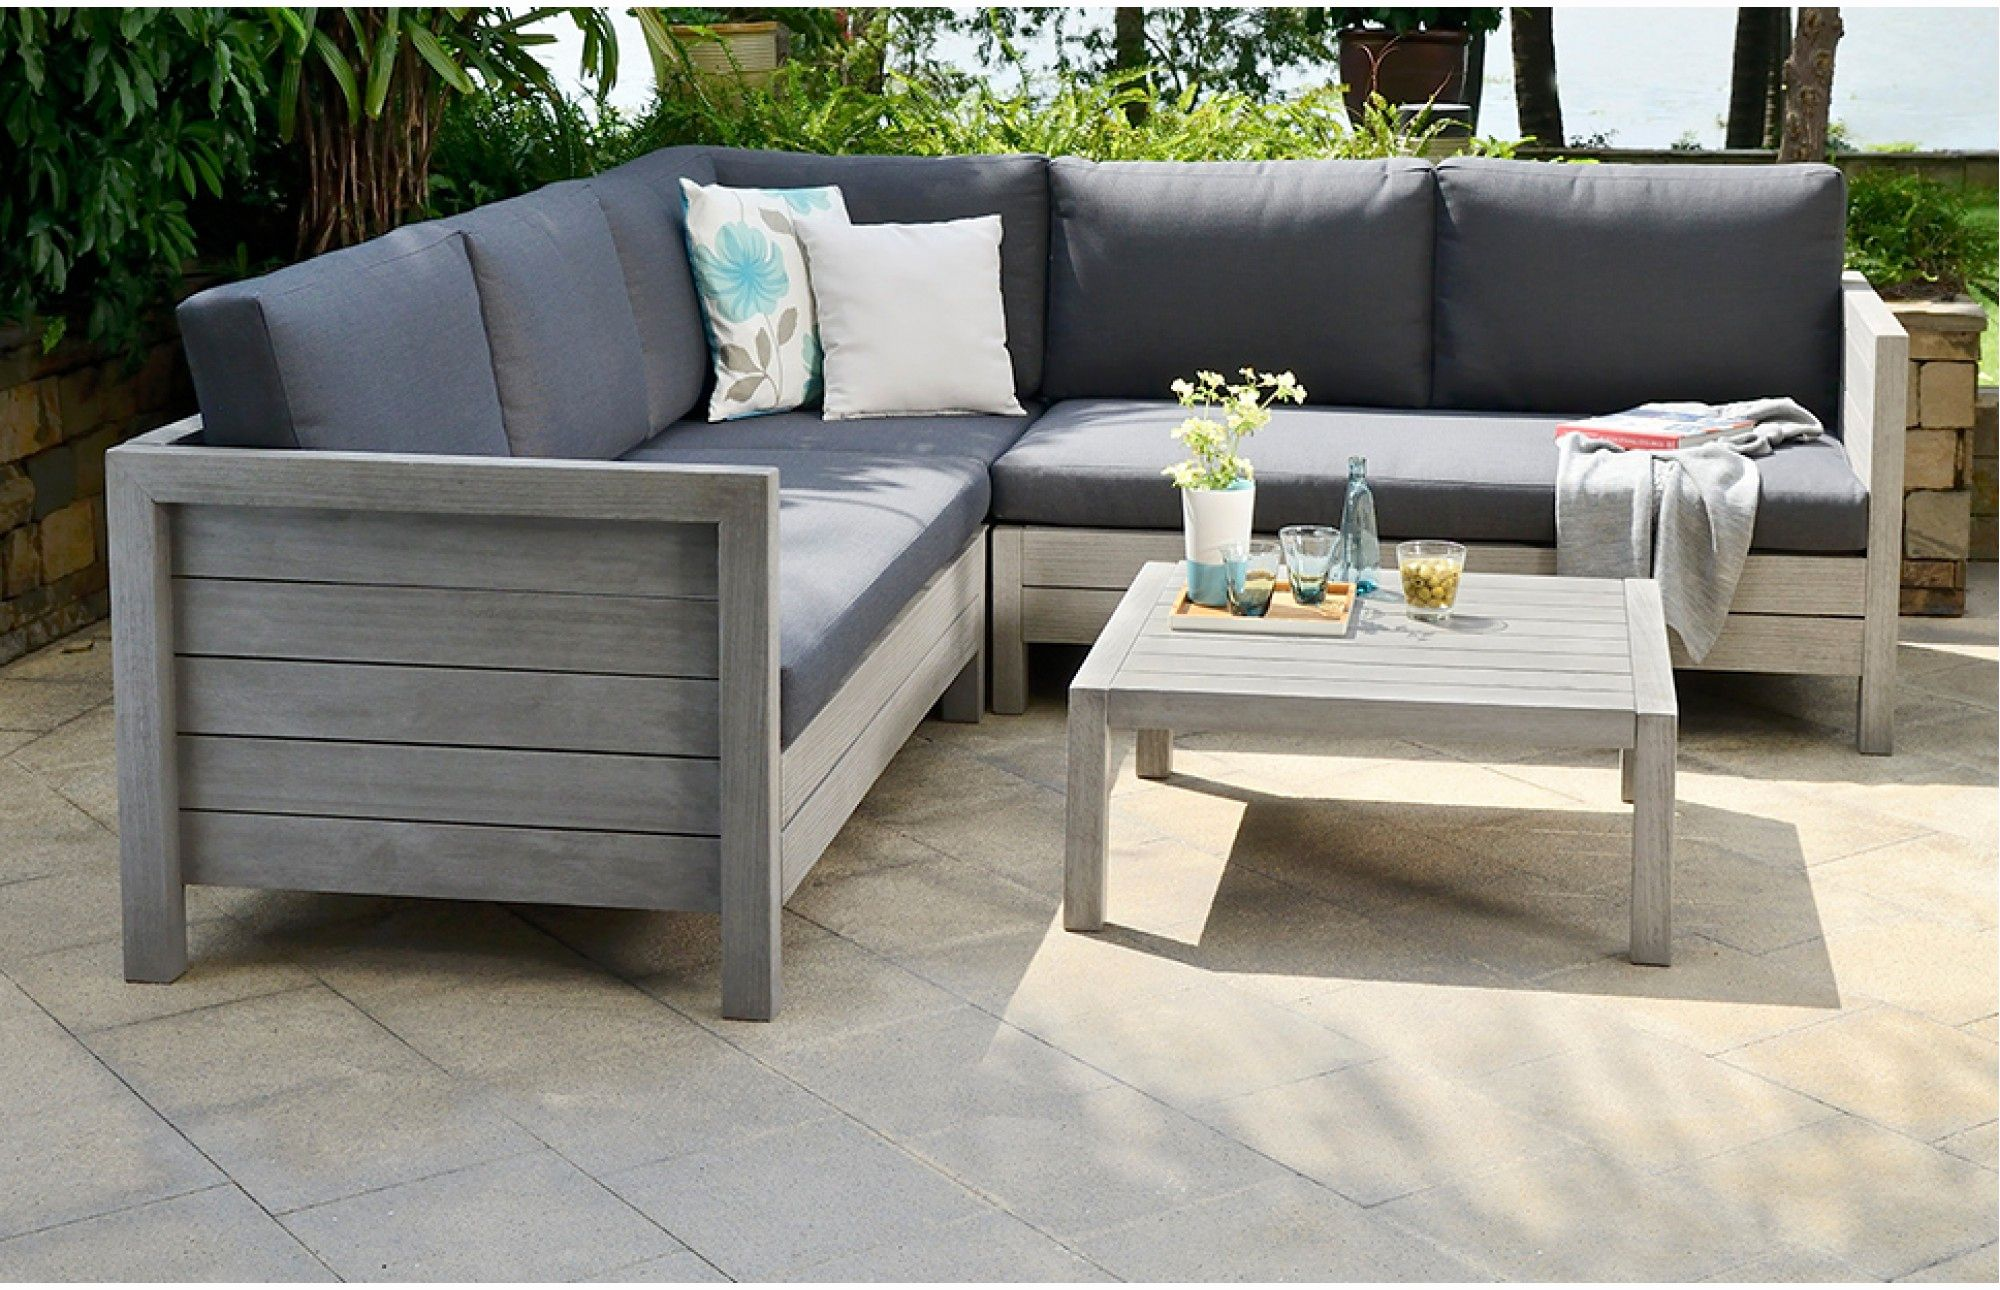 Rattan Sofa Corner Set Good Corner Sofa Outdoor Furniture Image Phenomenal Corner Outdoor